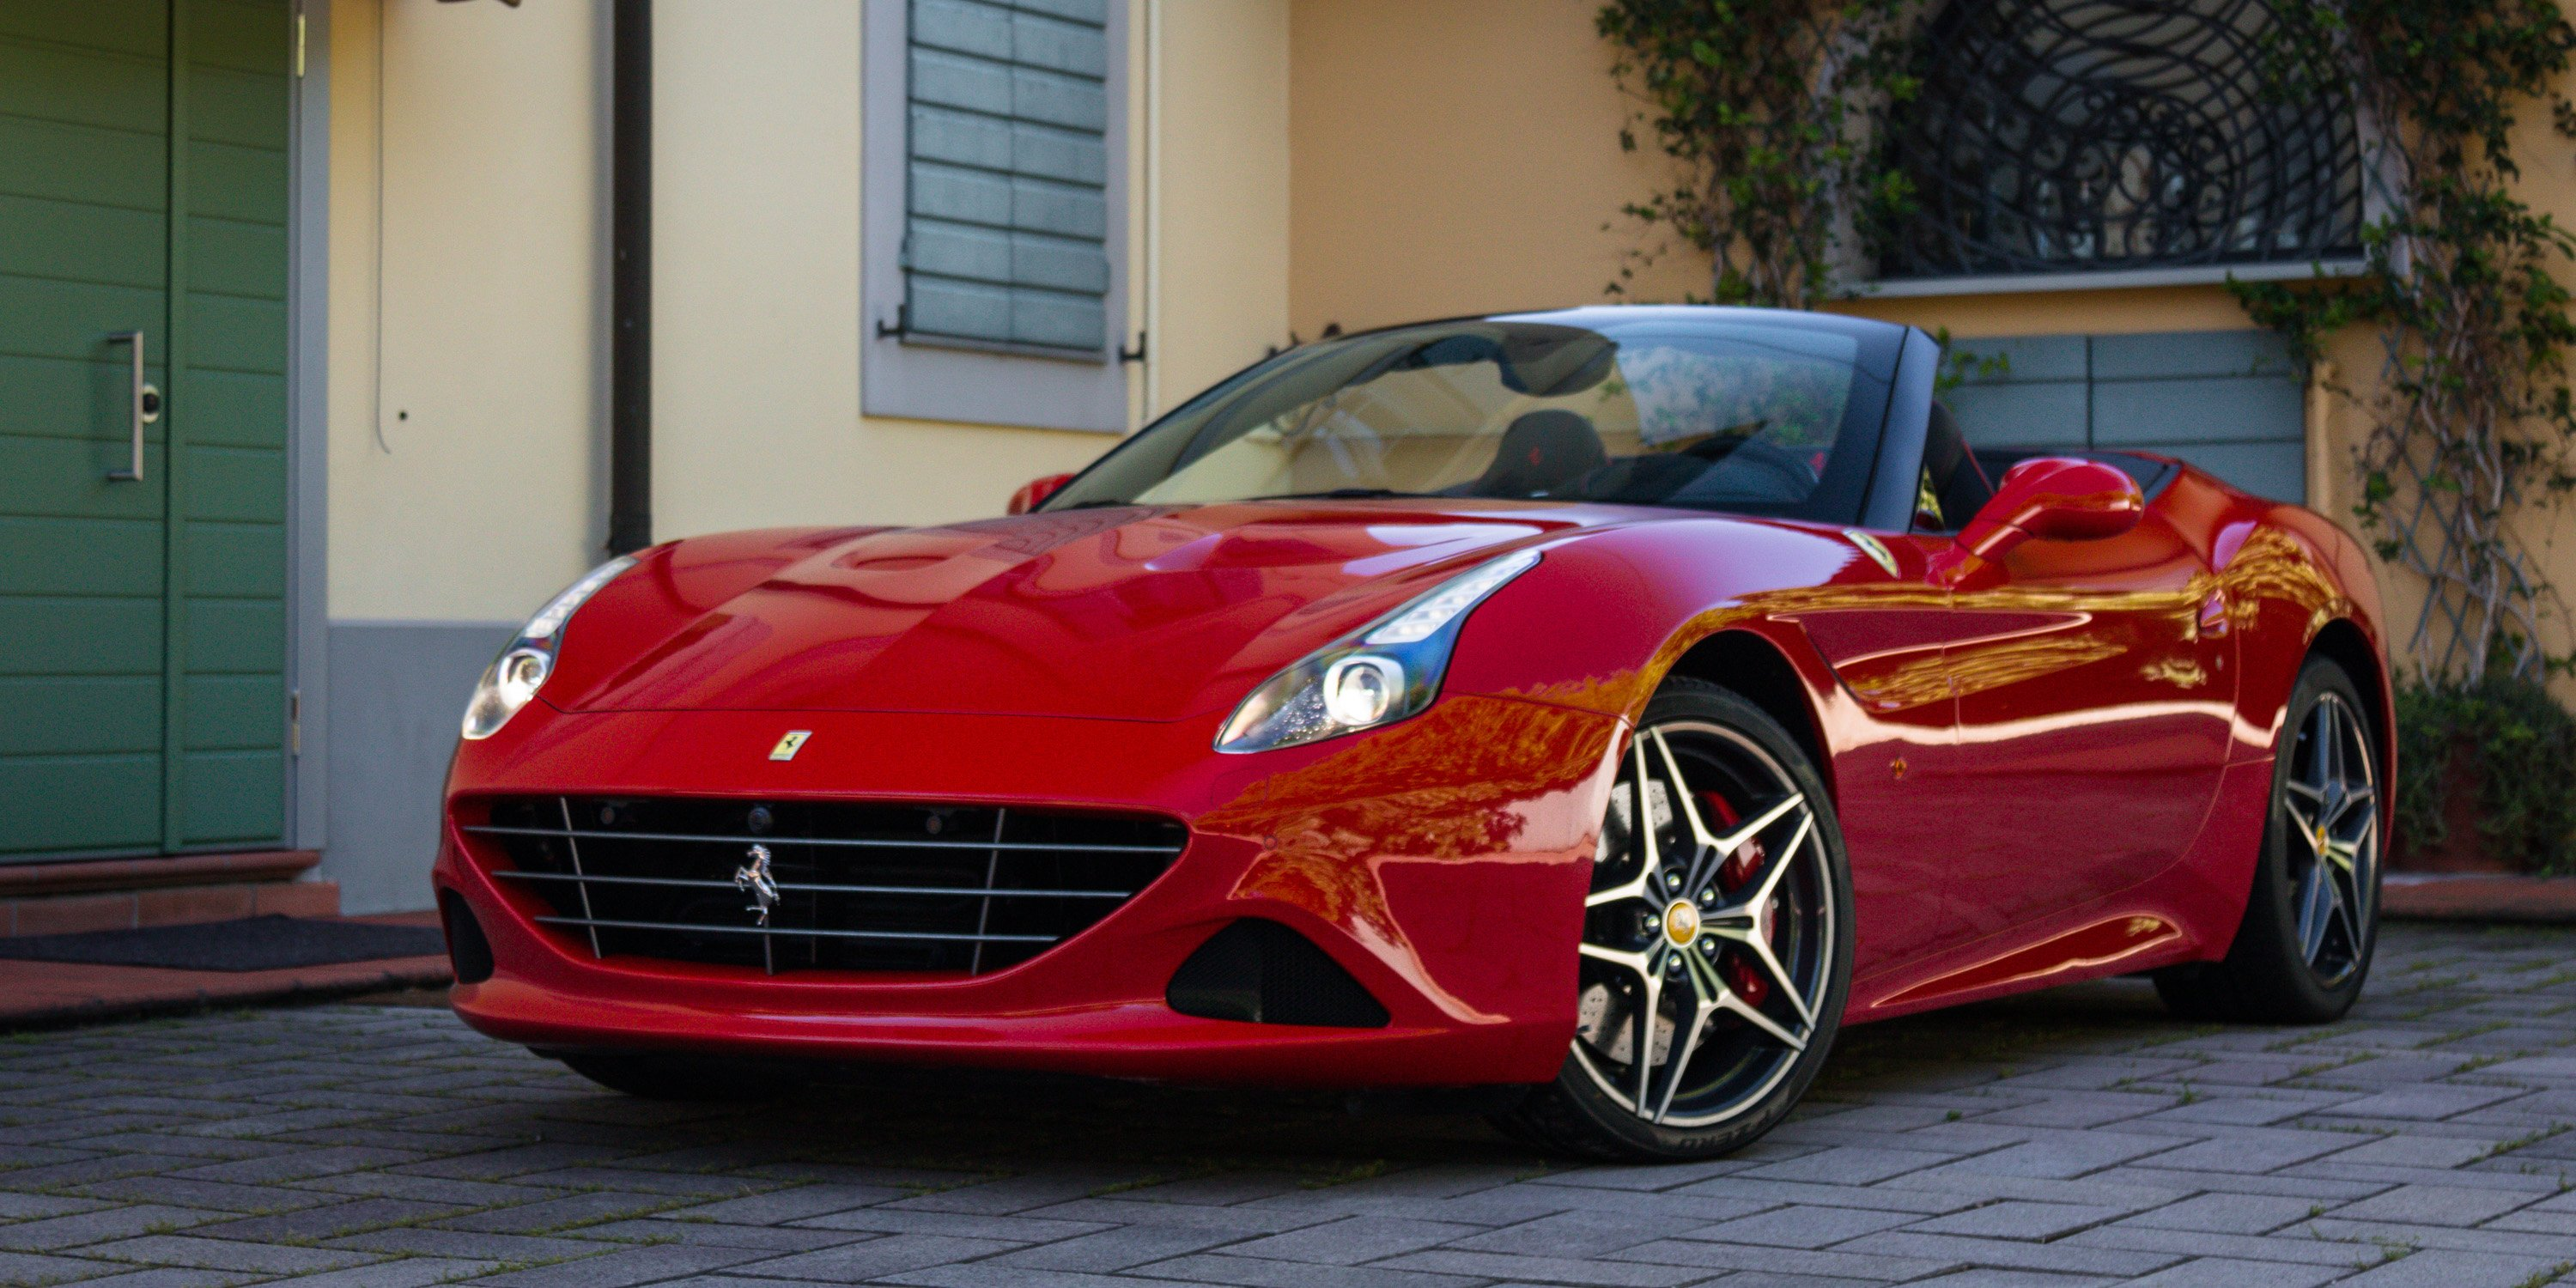 2016 ferrari california t handling speciale review caradvice. Black Bedroom Furniture Sets. Home Design Ideas